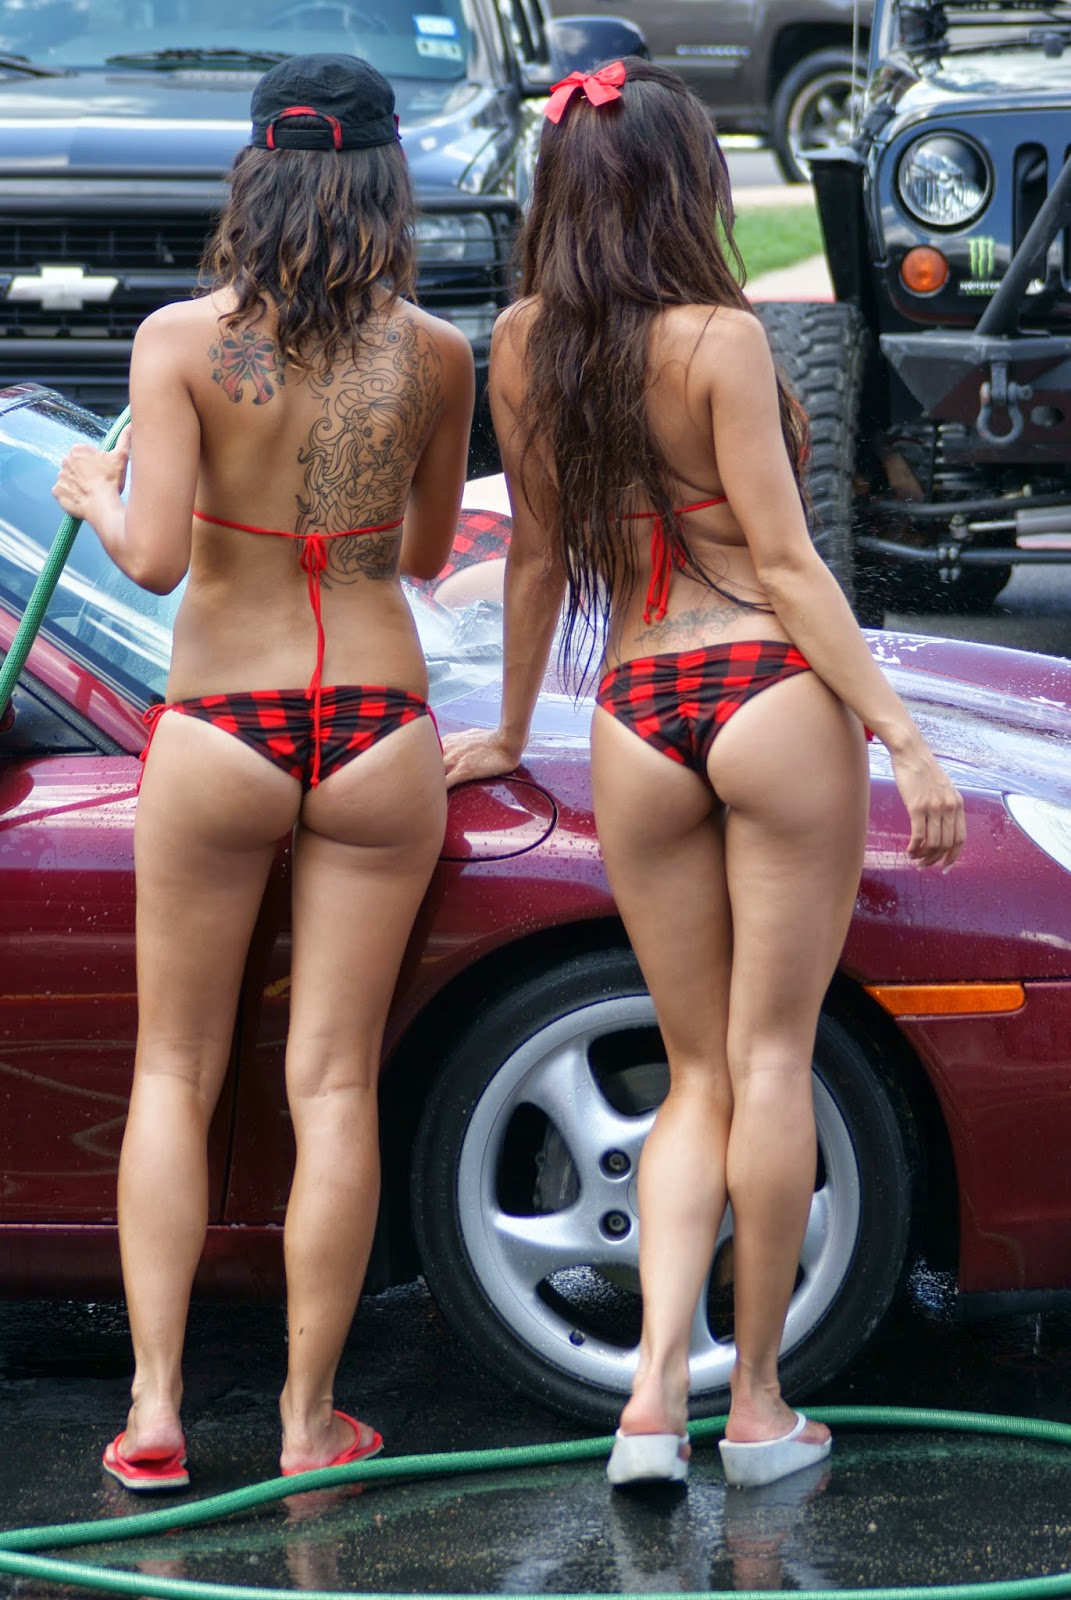 Sexy Nude Car Wash Babes